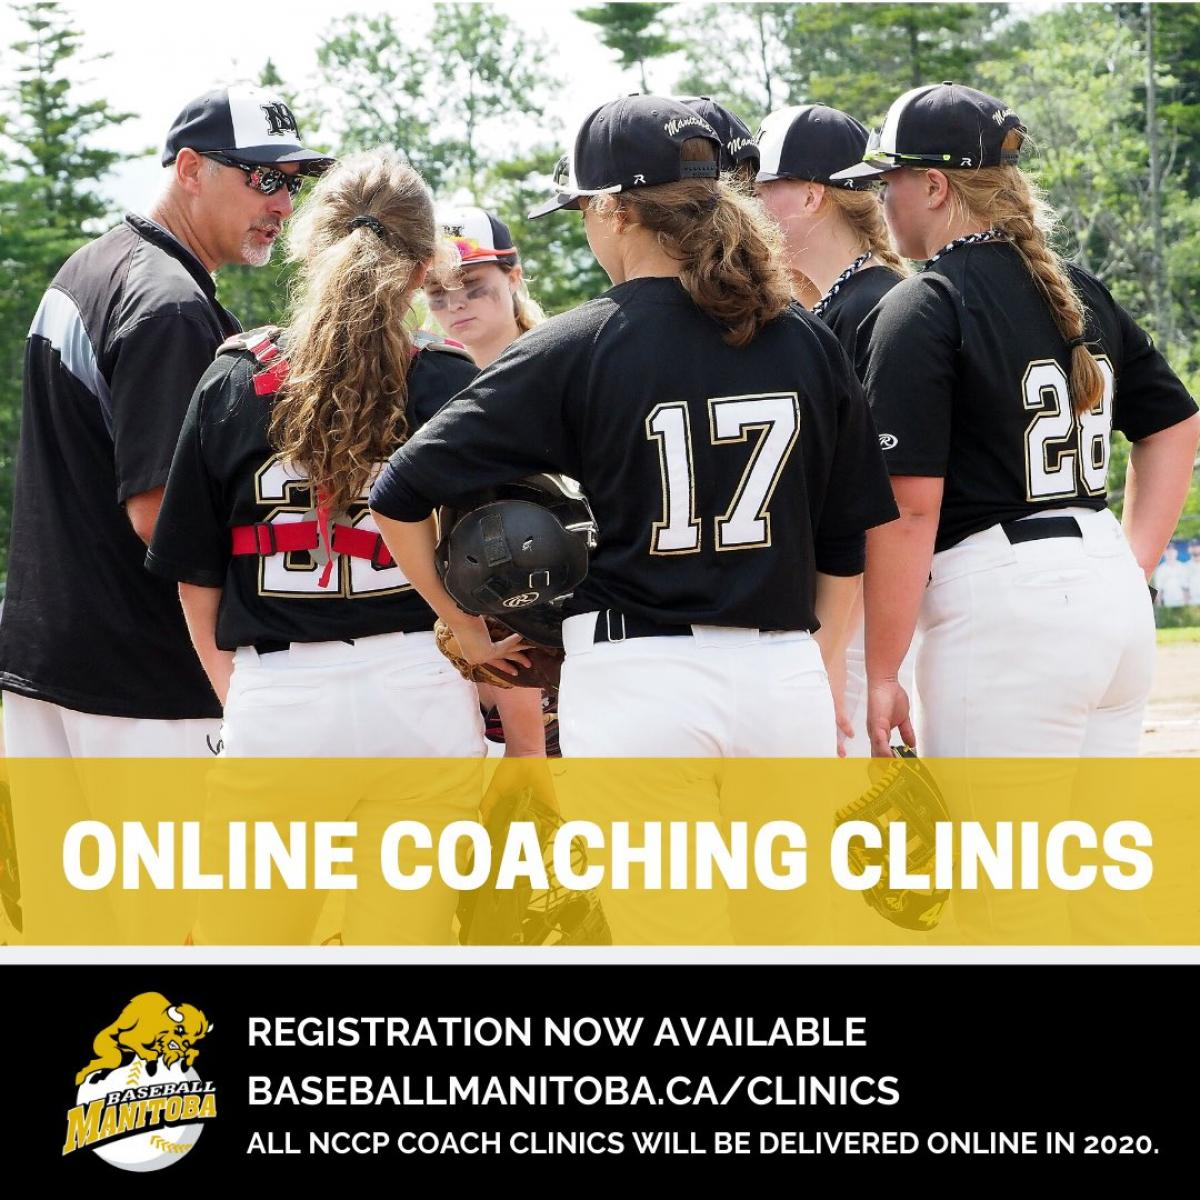 Baseball MB Coaching Clinics now ONLINE for 2020